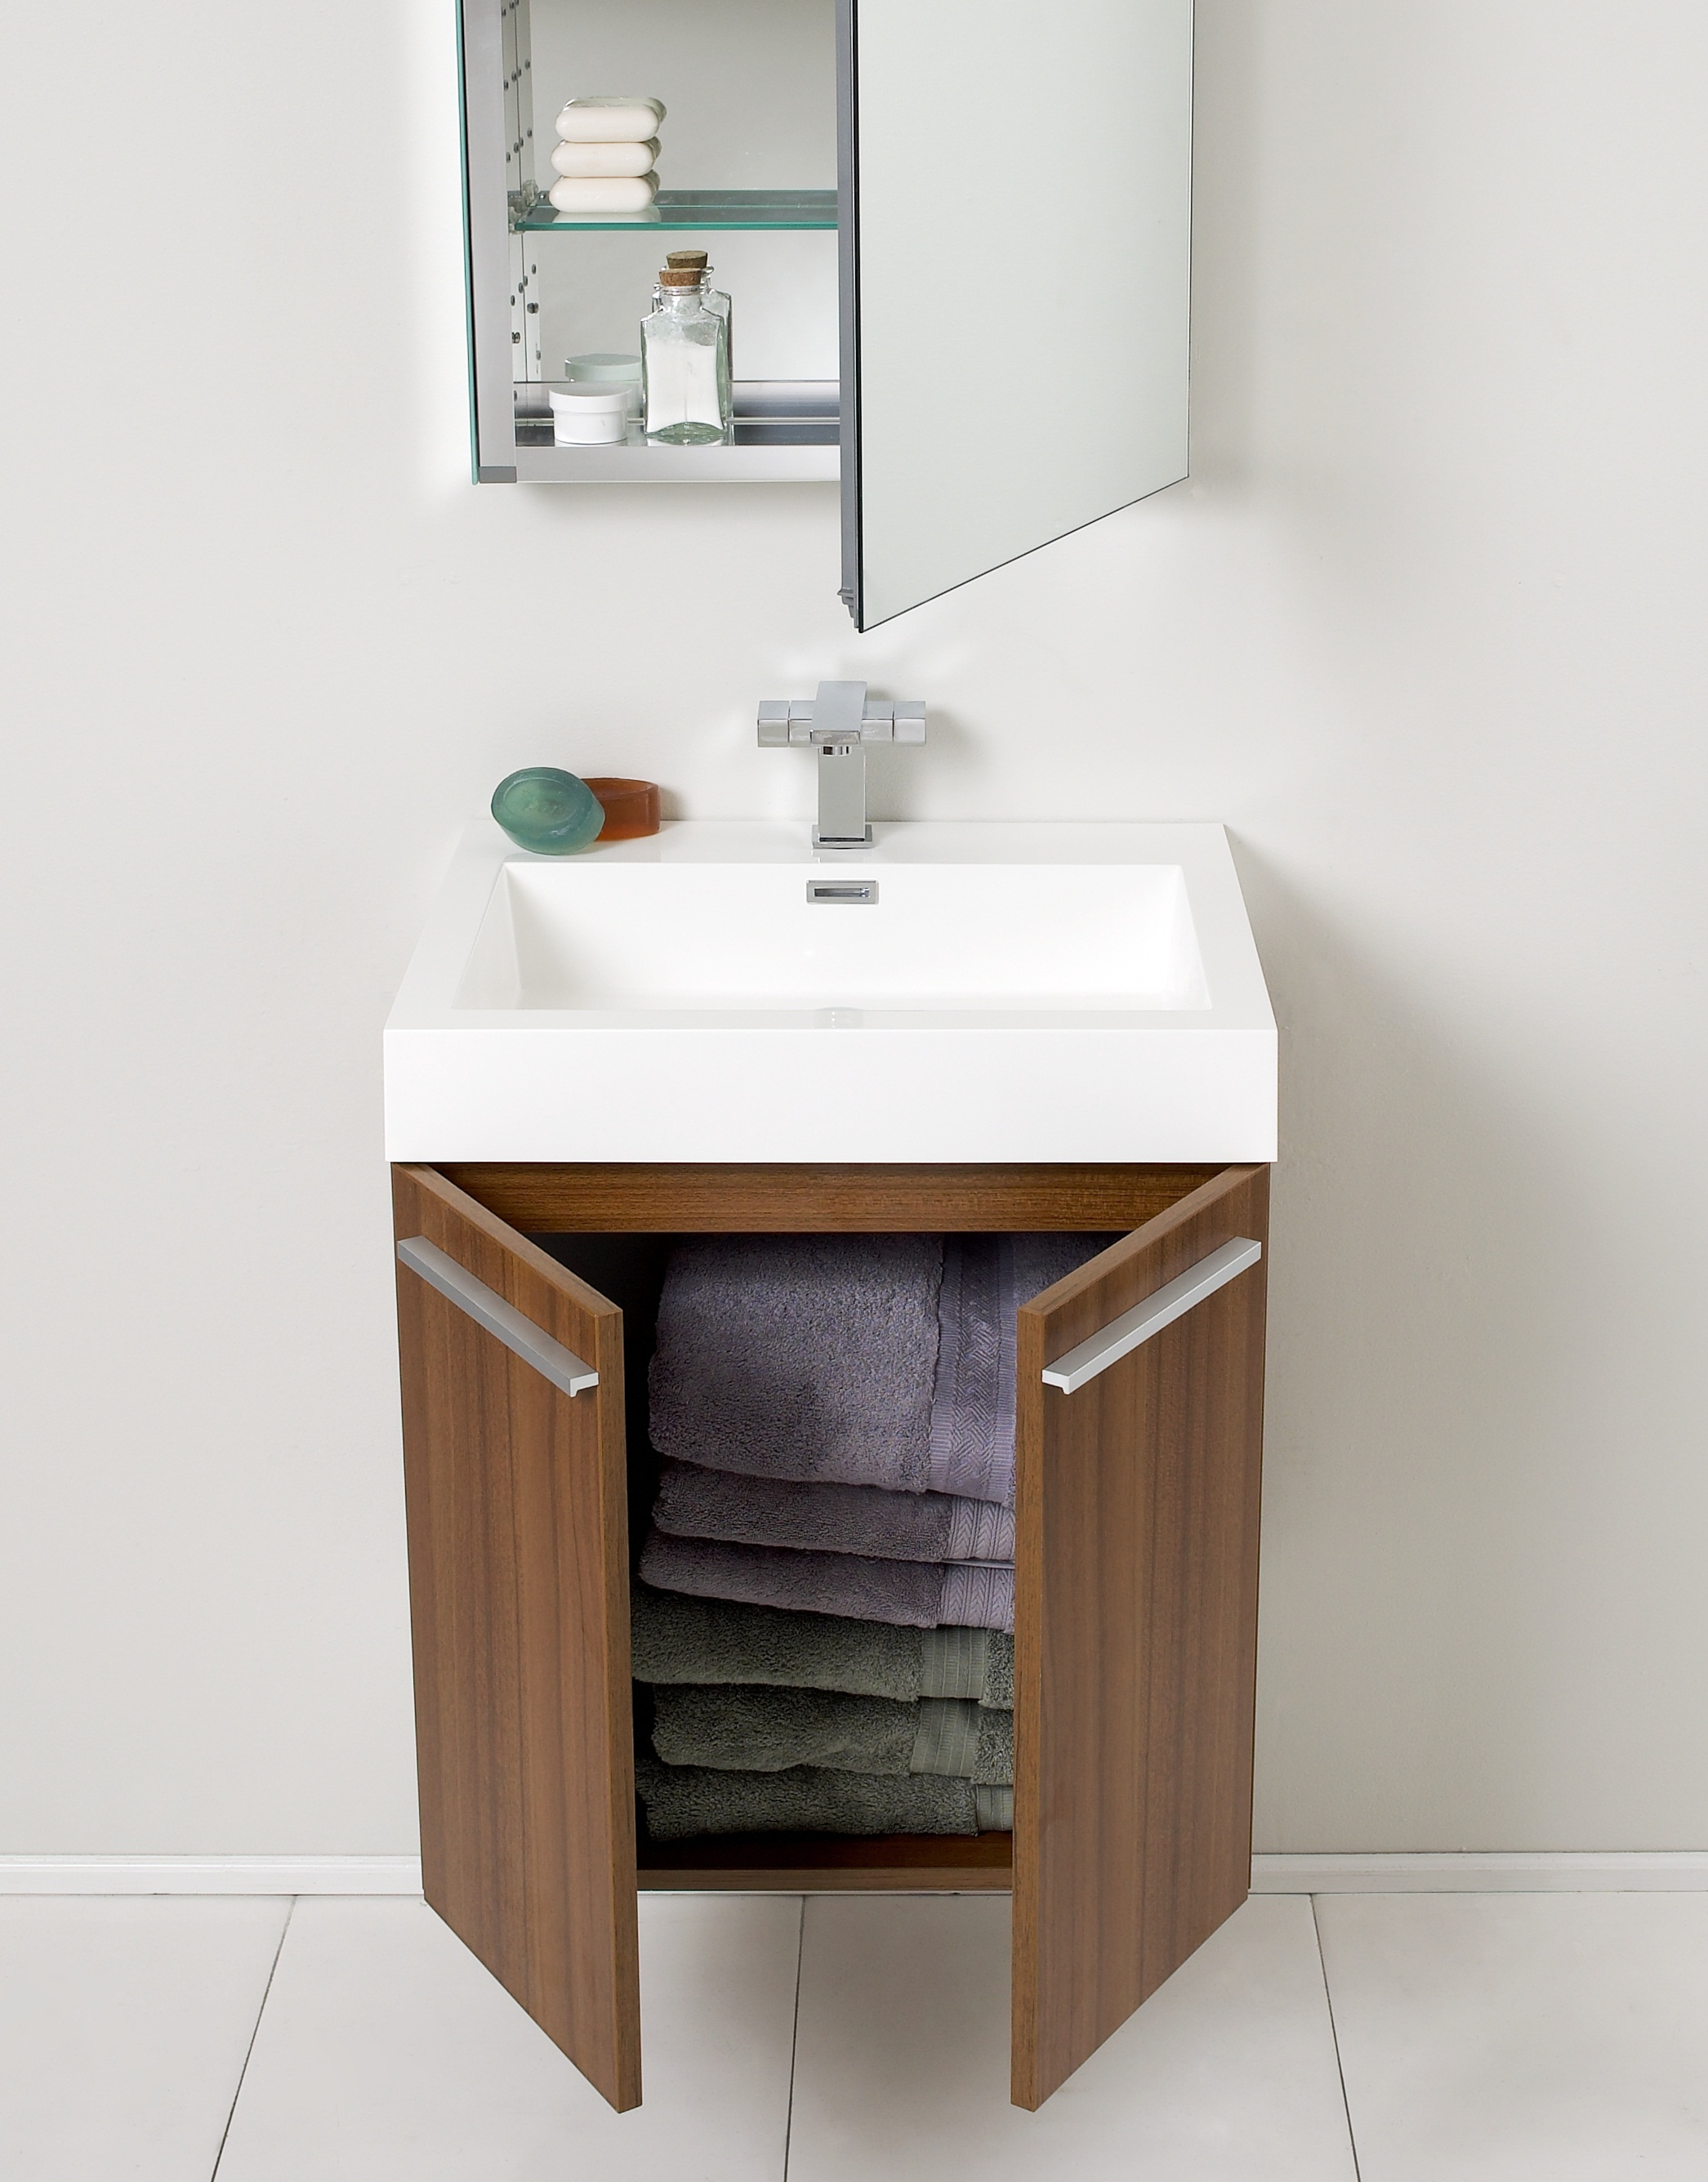 Small bathroom vanities for layouts lacking space eva for Small bathroom vanity with sink